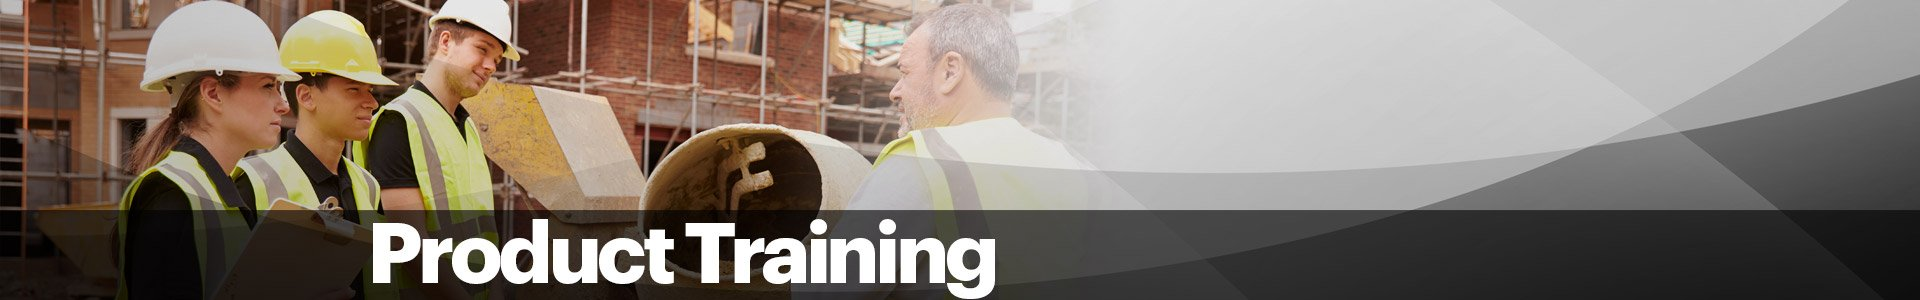 Product Training Banner